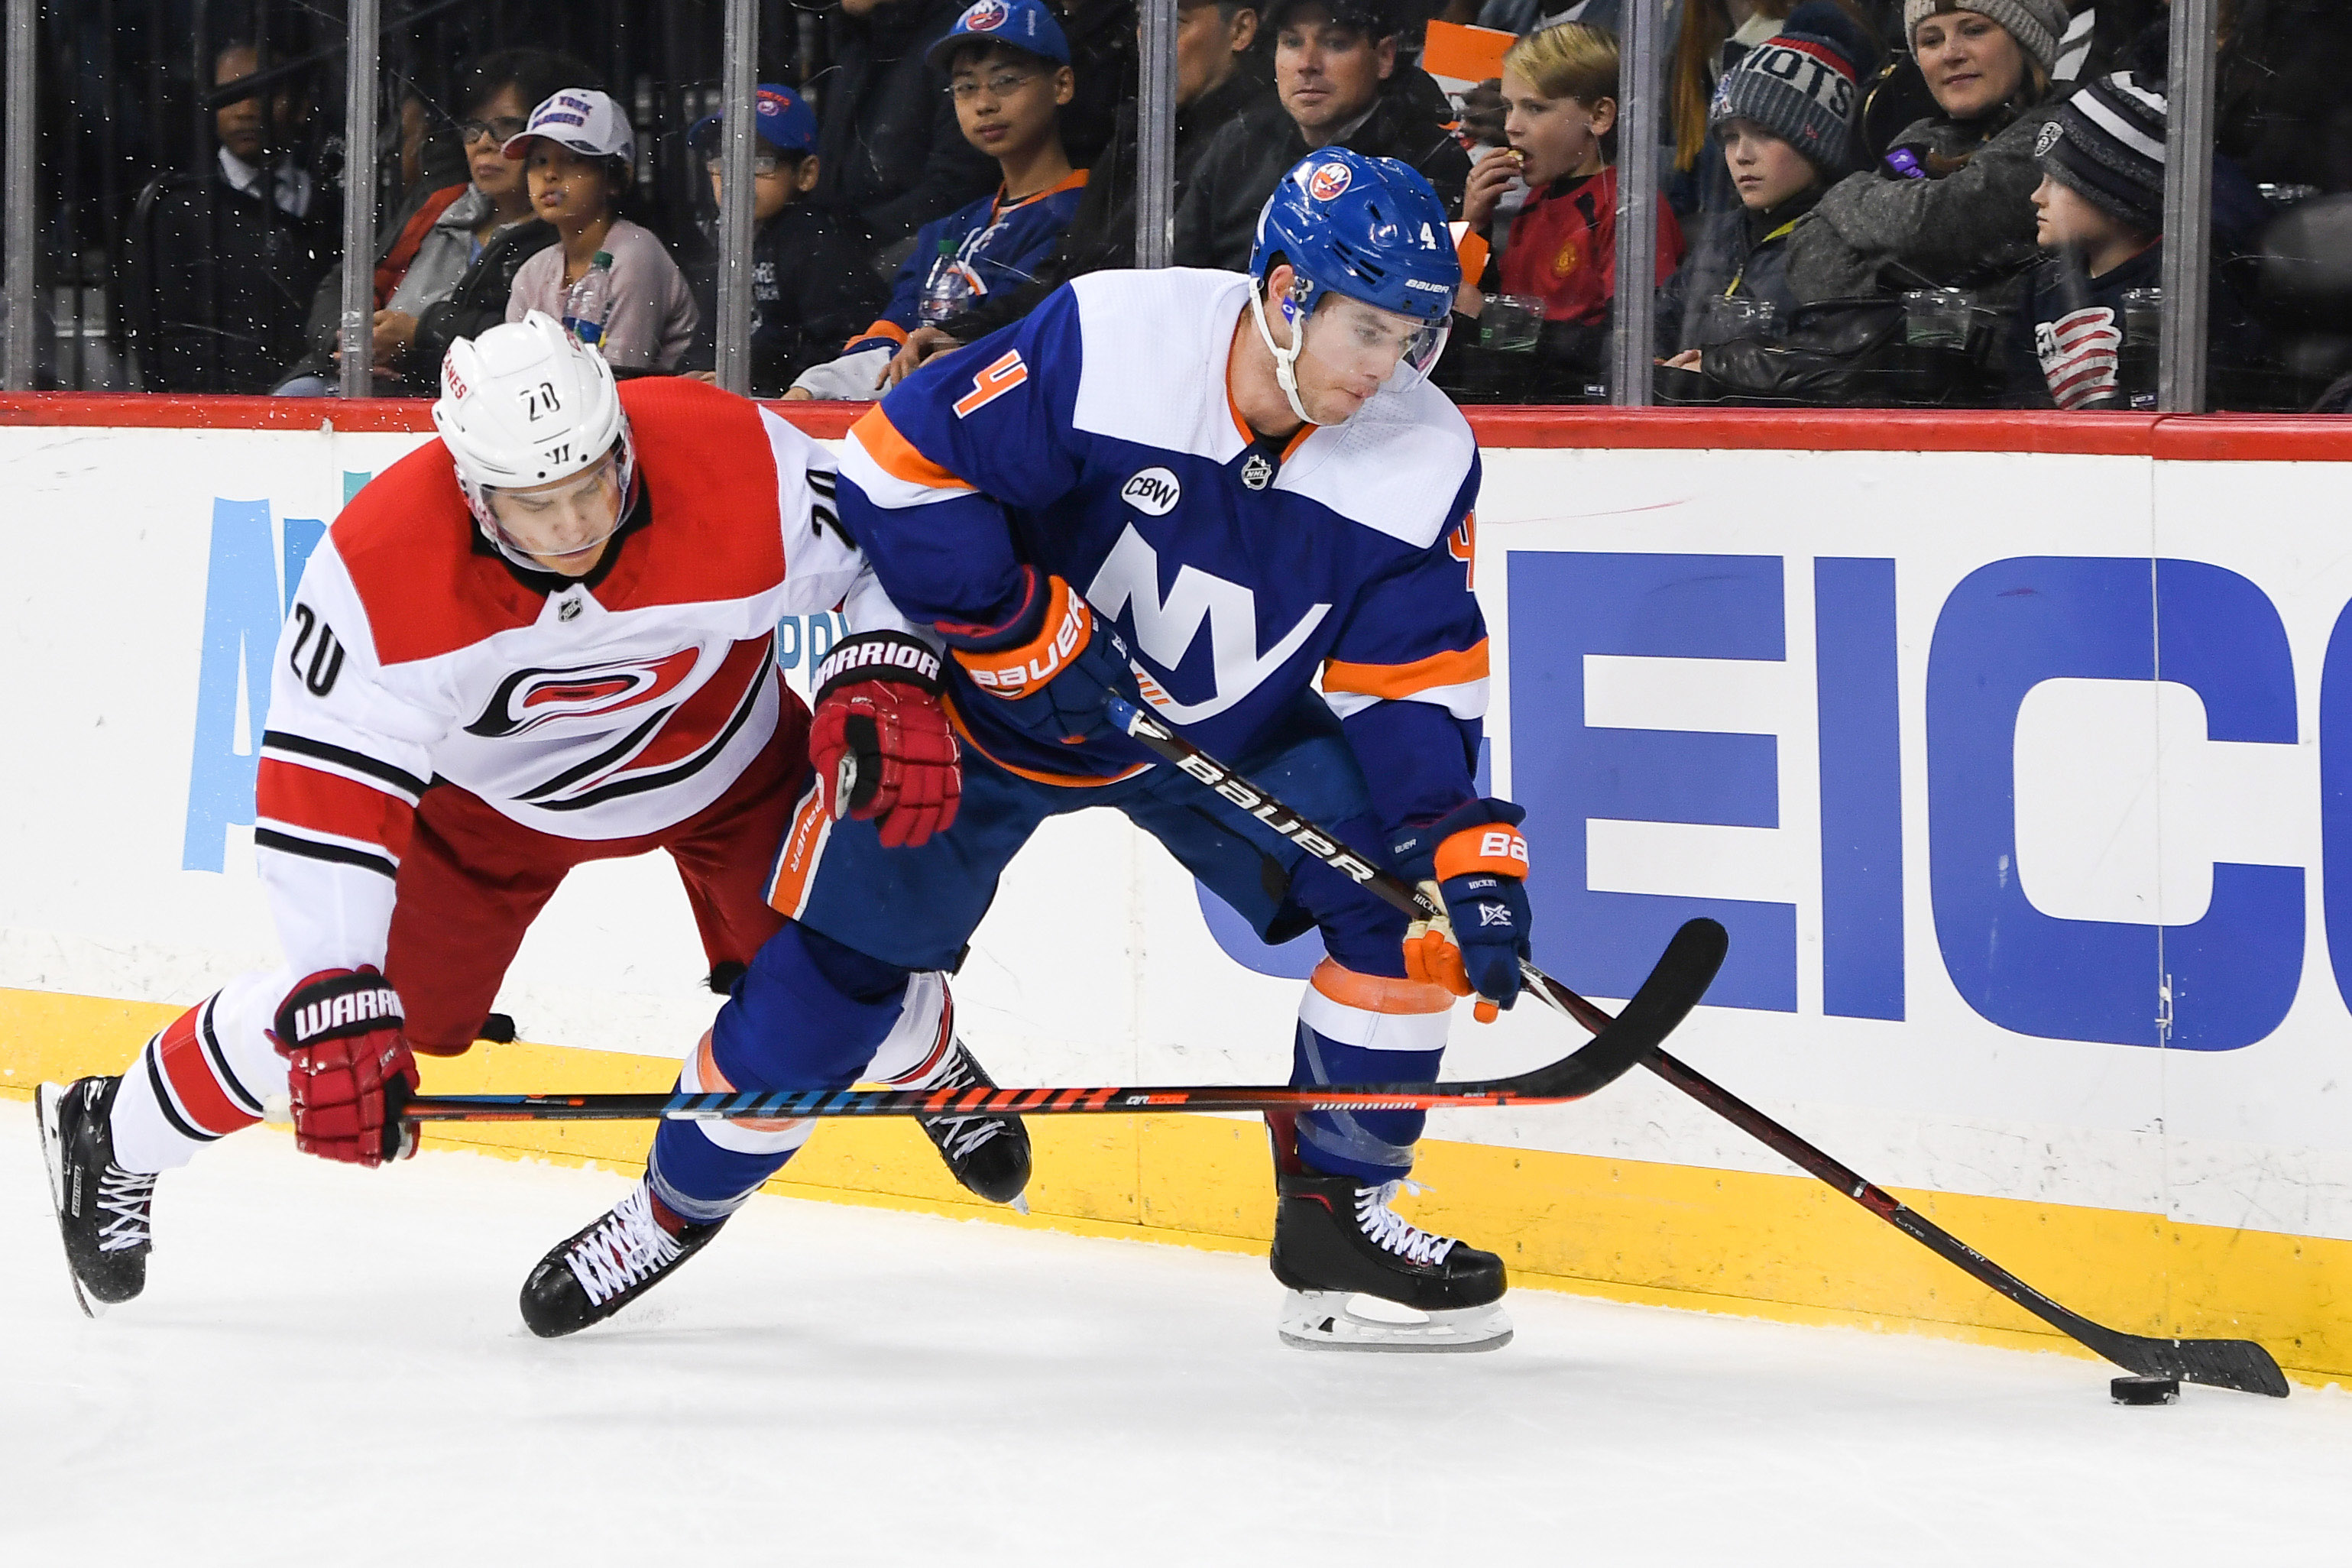 Nov 24, 2018; Brooklyn, NY, USA; New York Islanders defenseman Thomas Hickey (4) and Carolina Hurricanes center Sebastian Aho (20) battle for the puck behind the goal during the first period at Barclays Center. Mandatory Credit: Dennis Schneidler-USA TODAY Sports